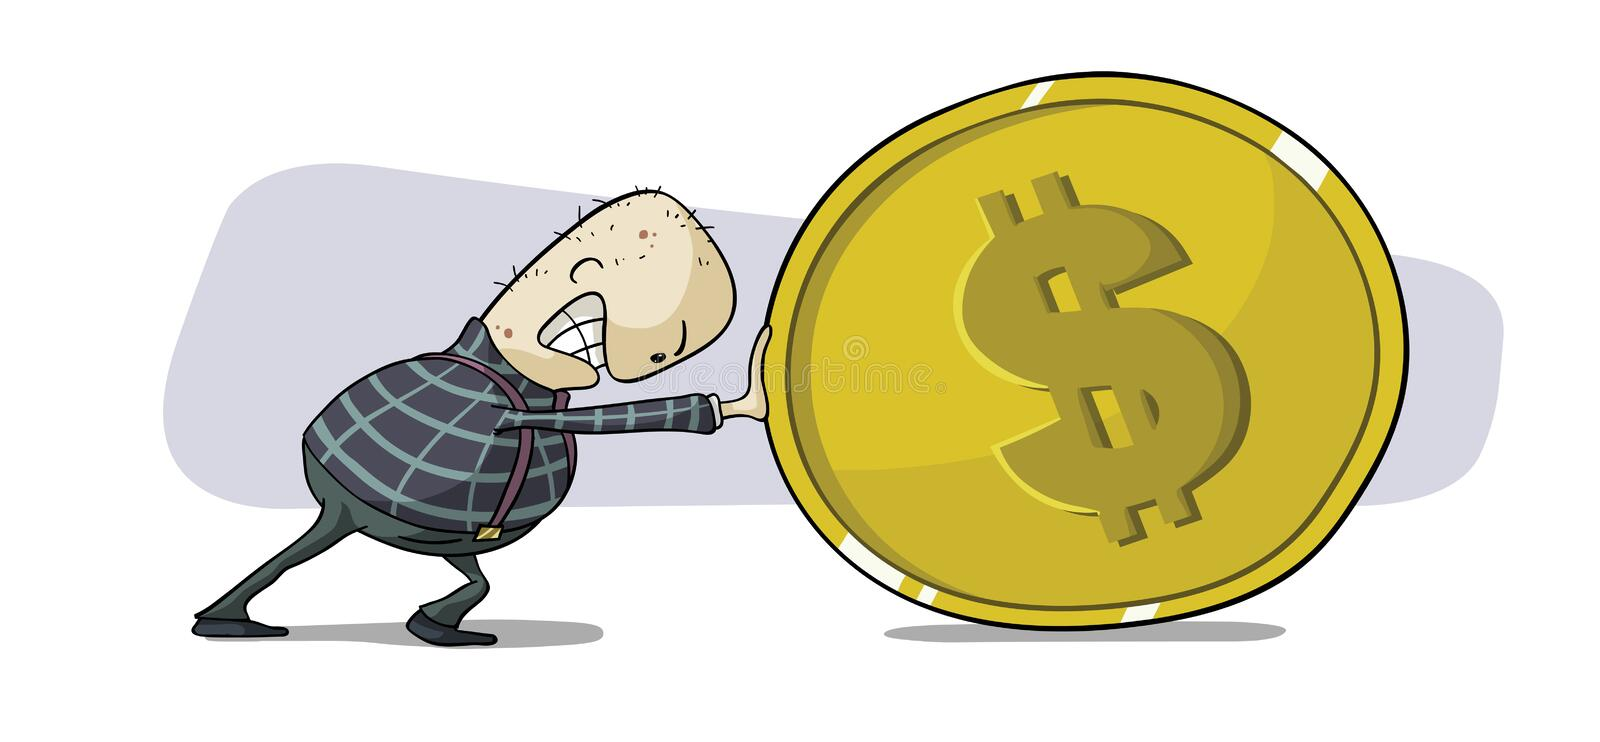 Download Pushing dollar coin stock vector. Image of image, currency - 26649435